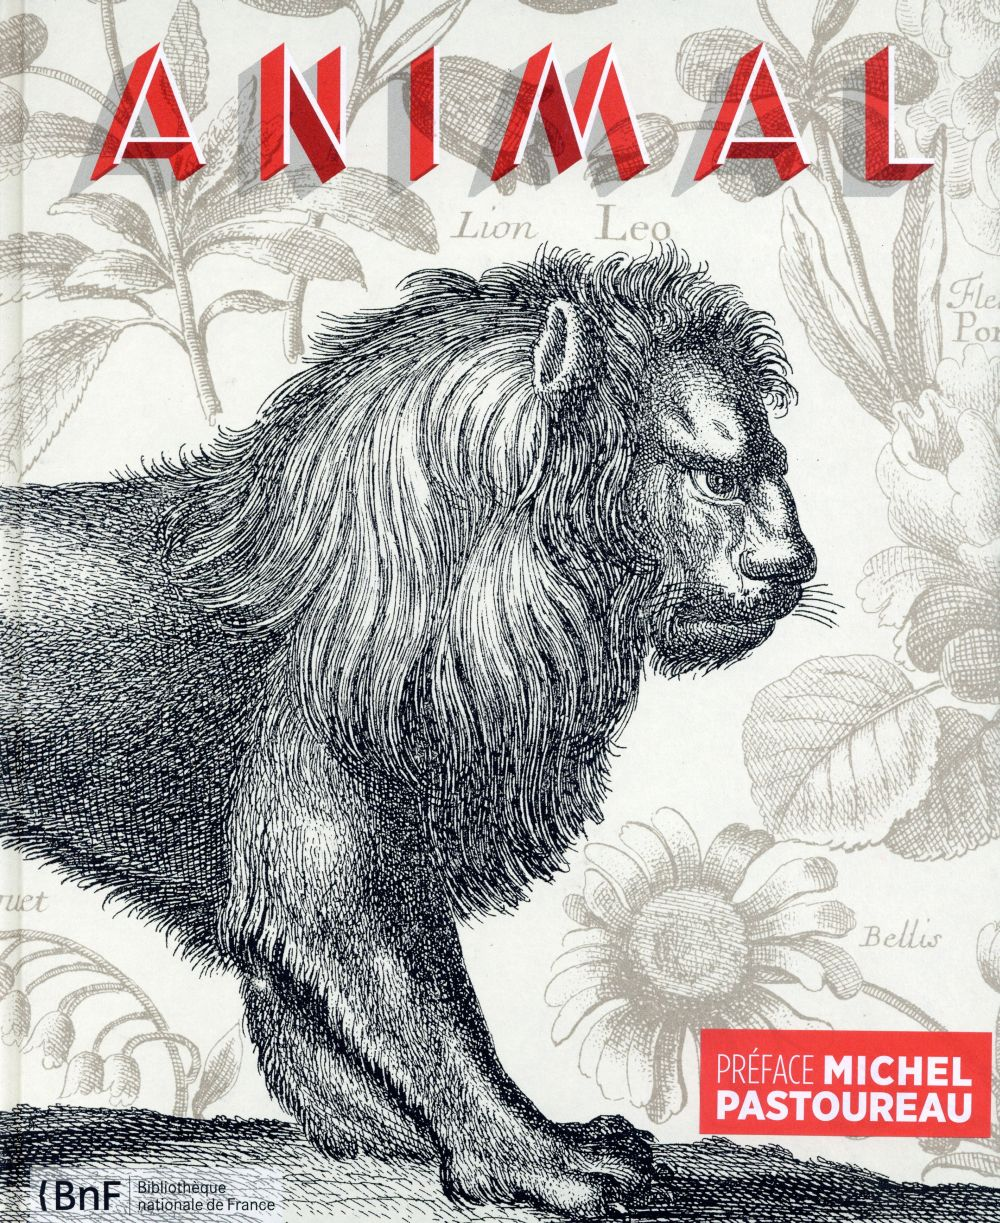 Couverture_Animal_Estampe_BnF_Pastoureau